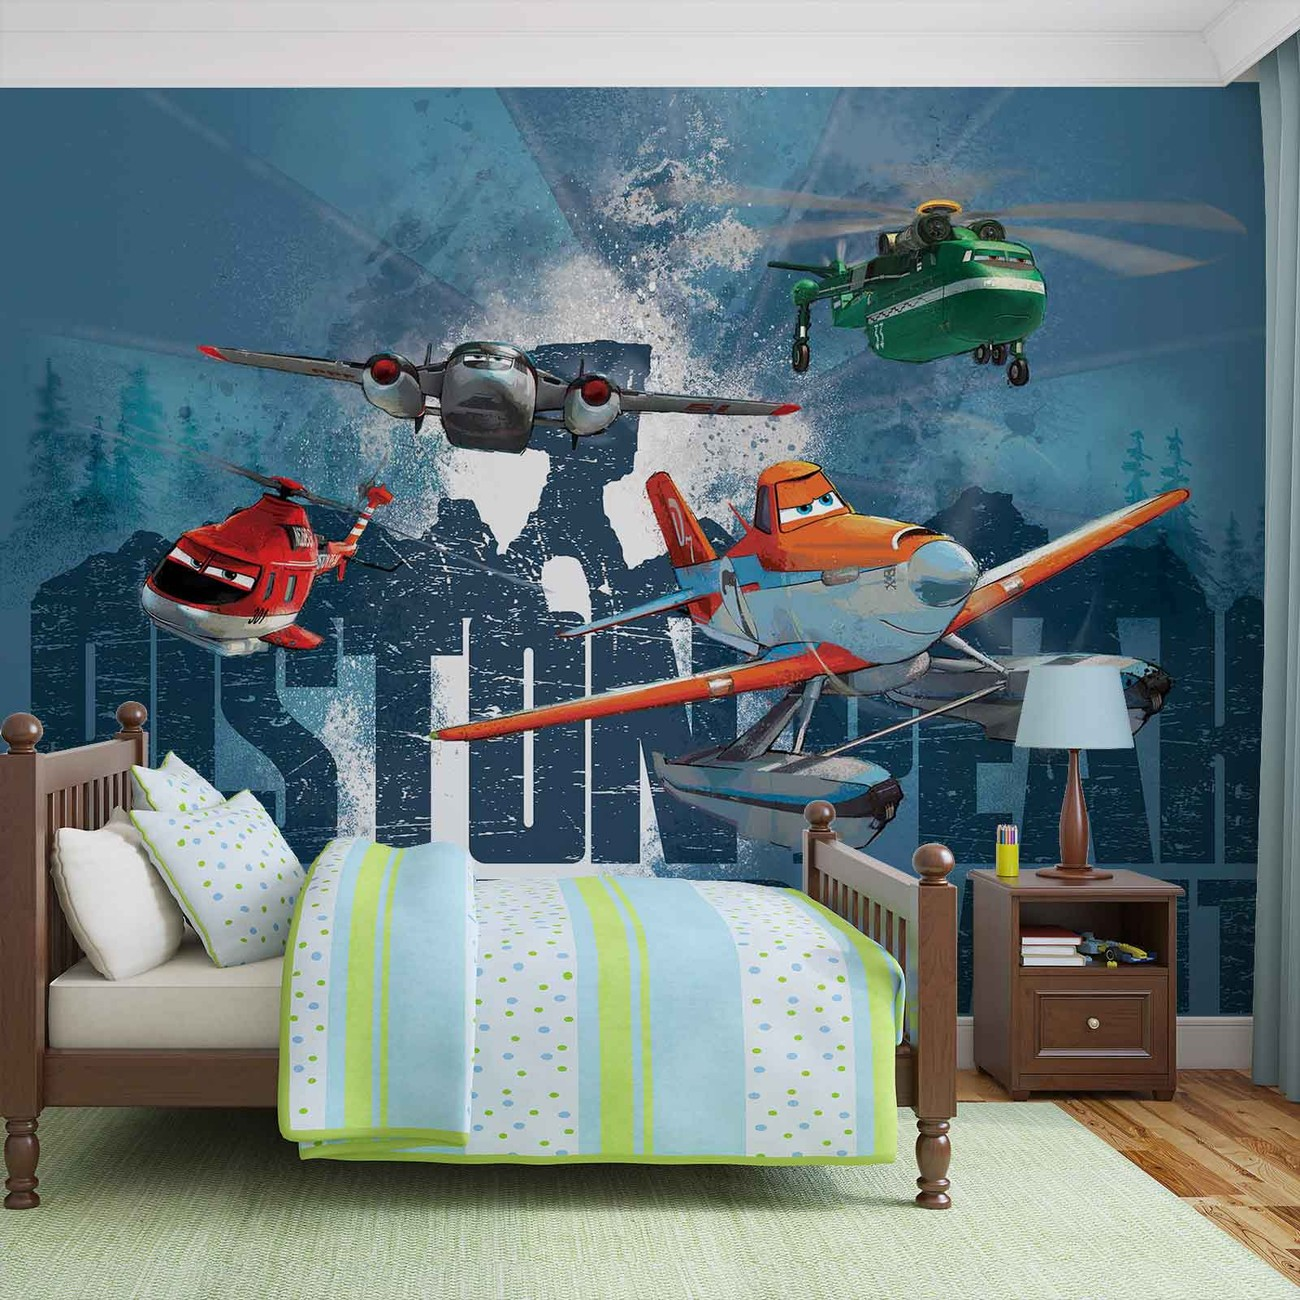 Disney planes dusty blade windlifter wall paper mural for Disney planes wall mural